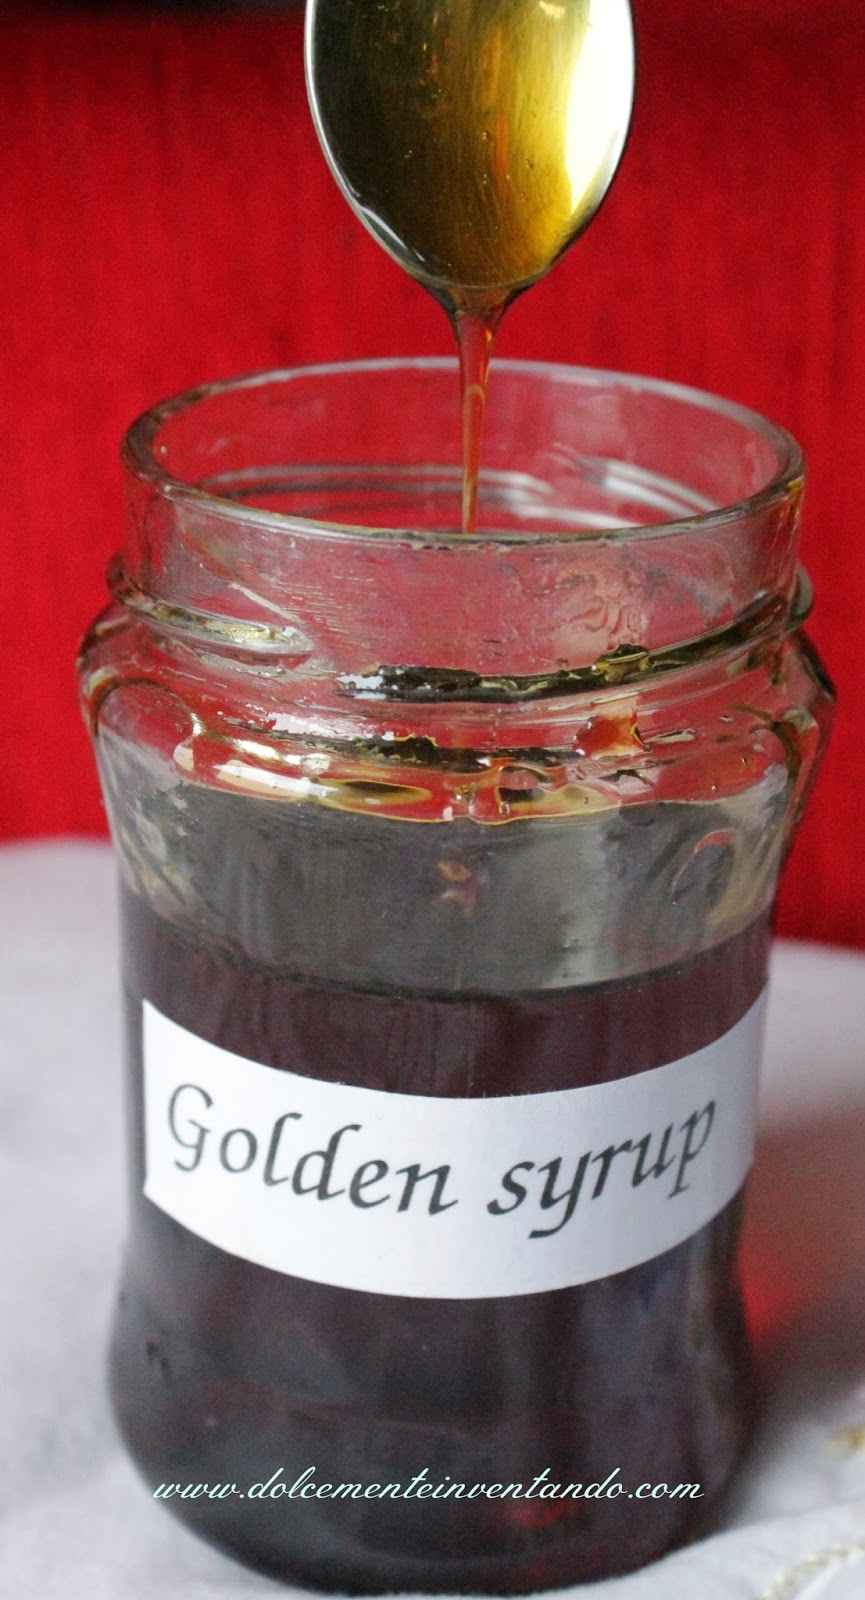 golden syrup fatto in casa: facile, versatile ed economico!